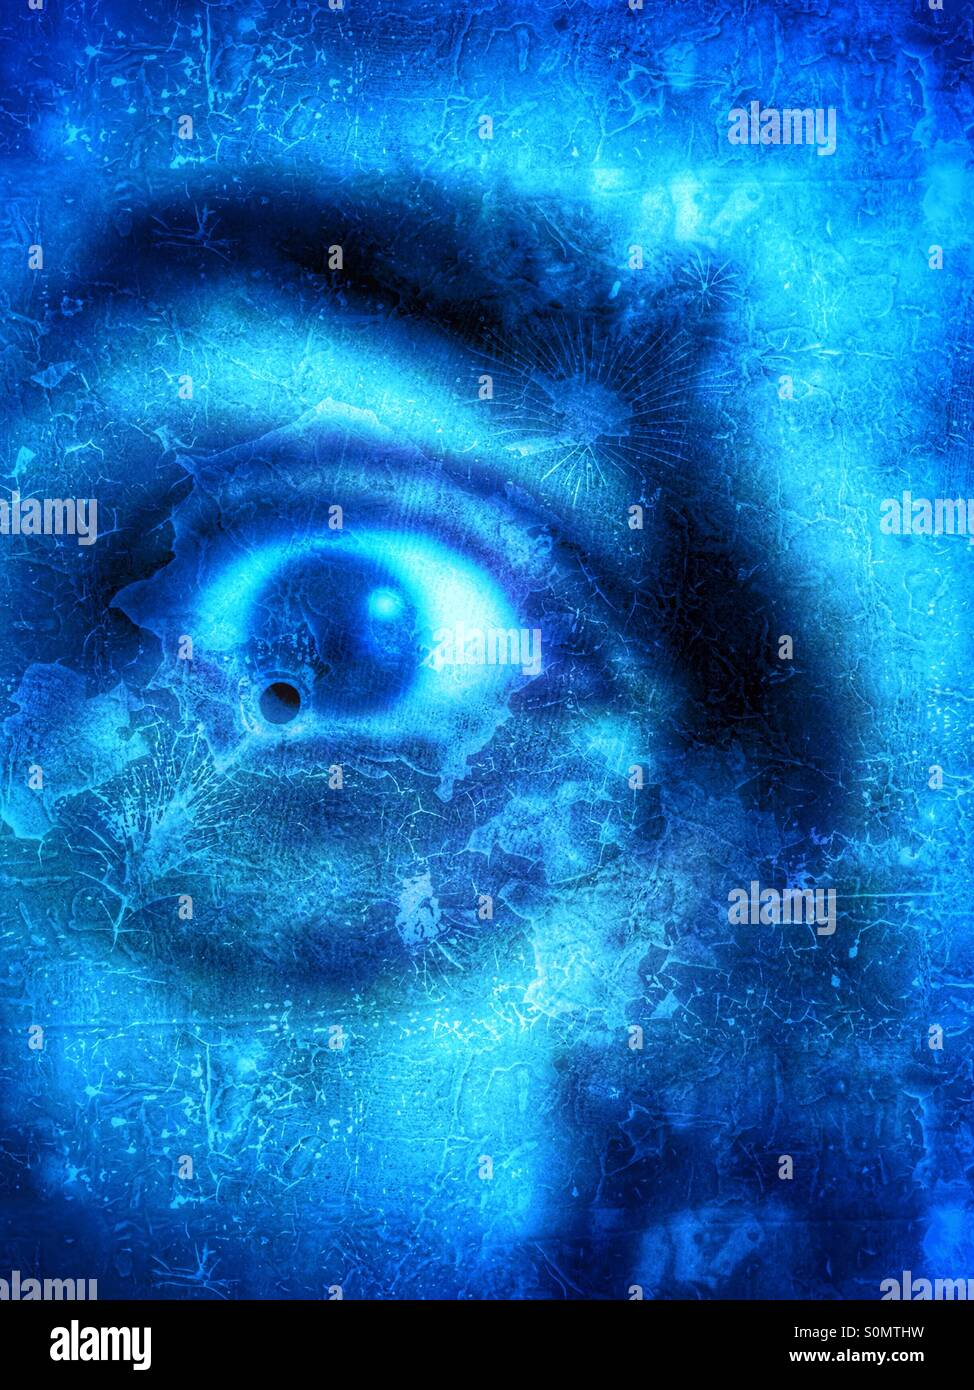 Close up of a man face with blue teint and grunge effect, fear concept. - Stock Image